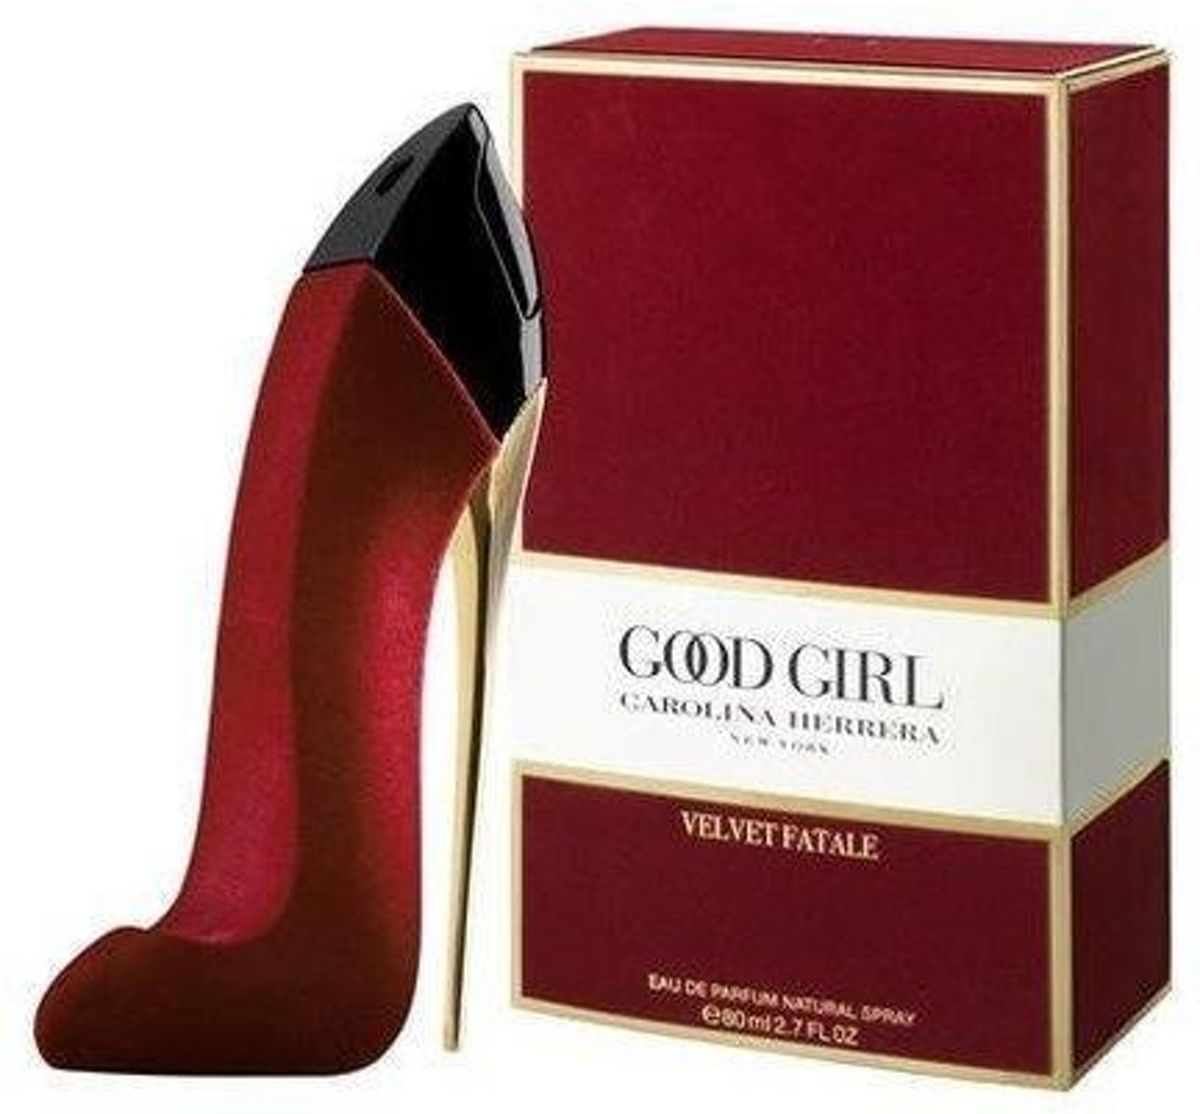 Carolina Herrera Good Girl Velvet Fatale Eau de Parfum 80ml Spray